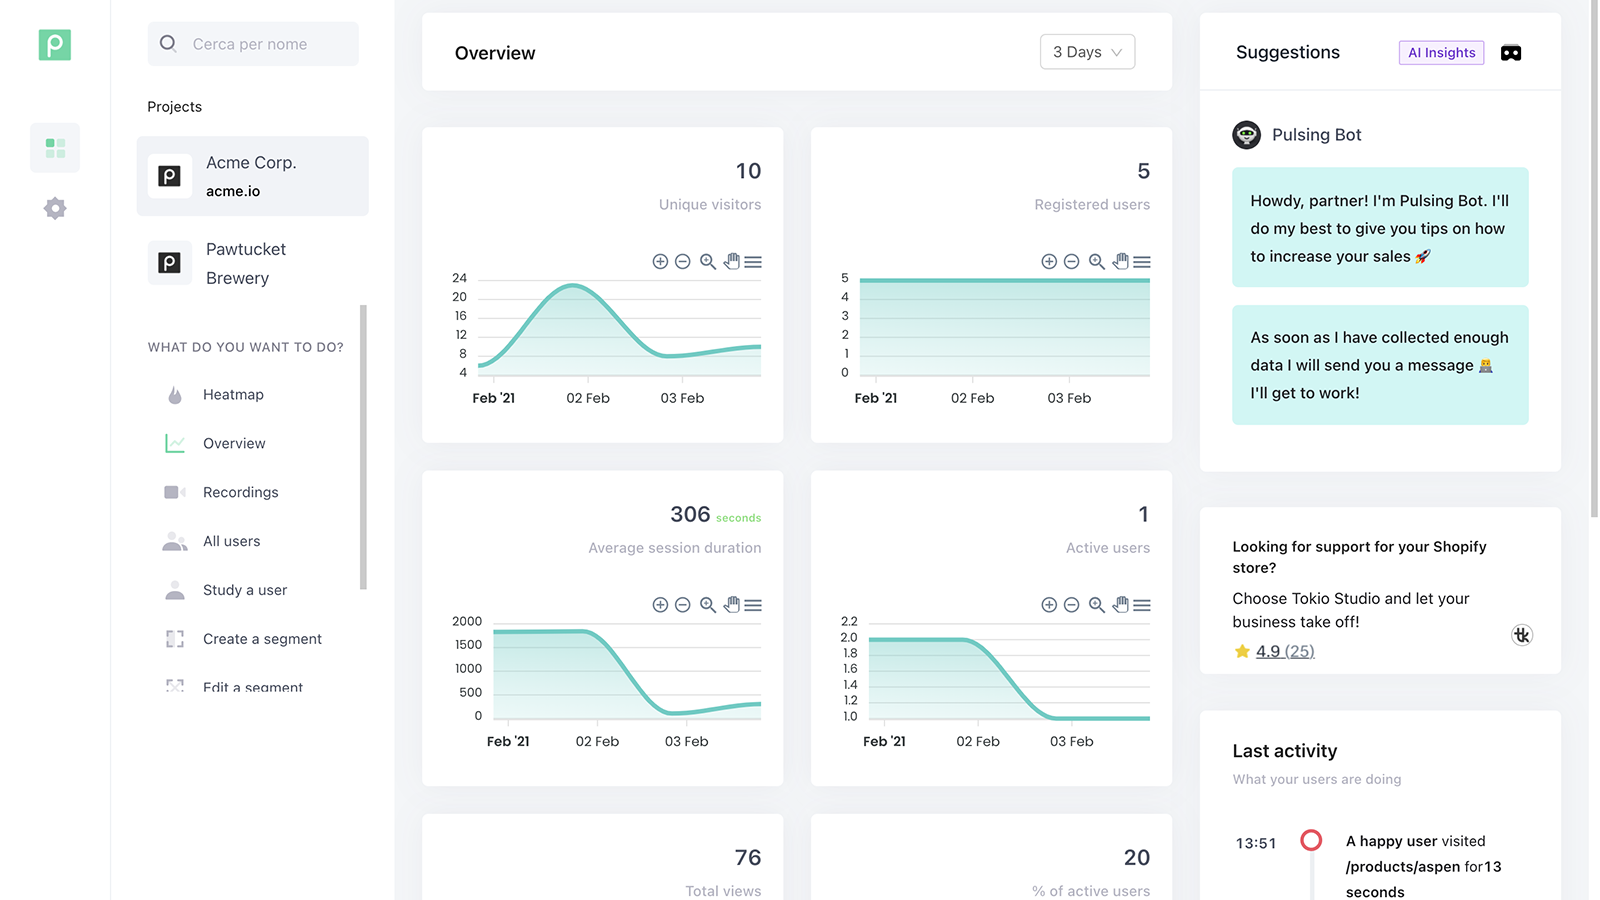 Your users' analytics based on their actions